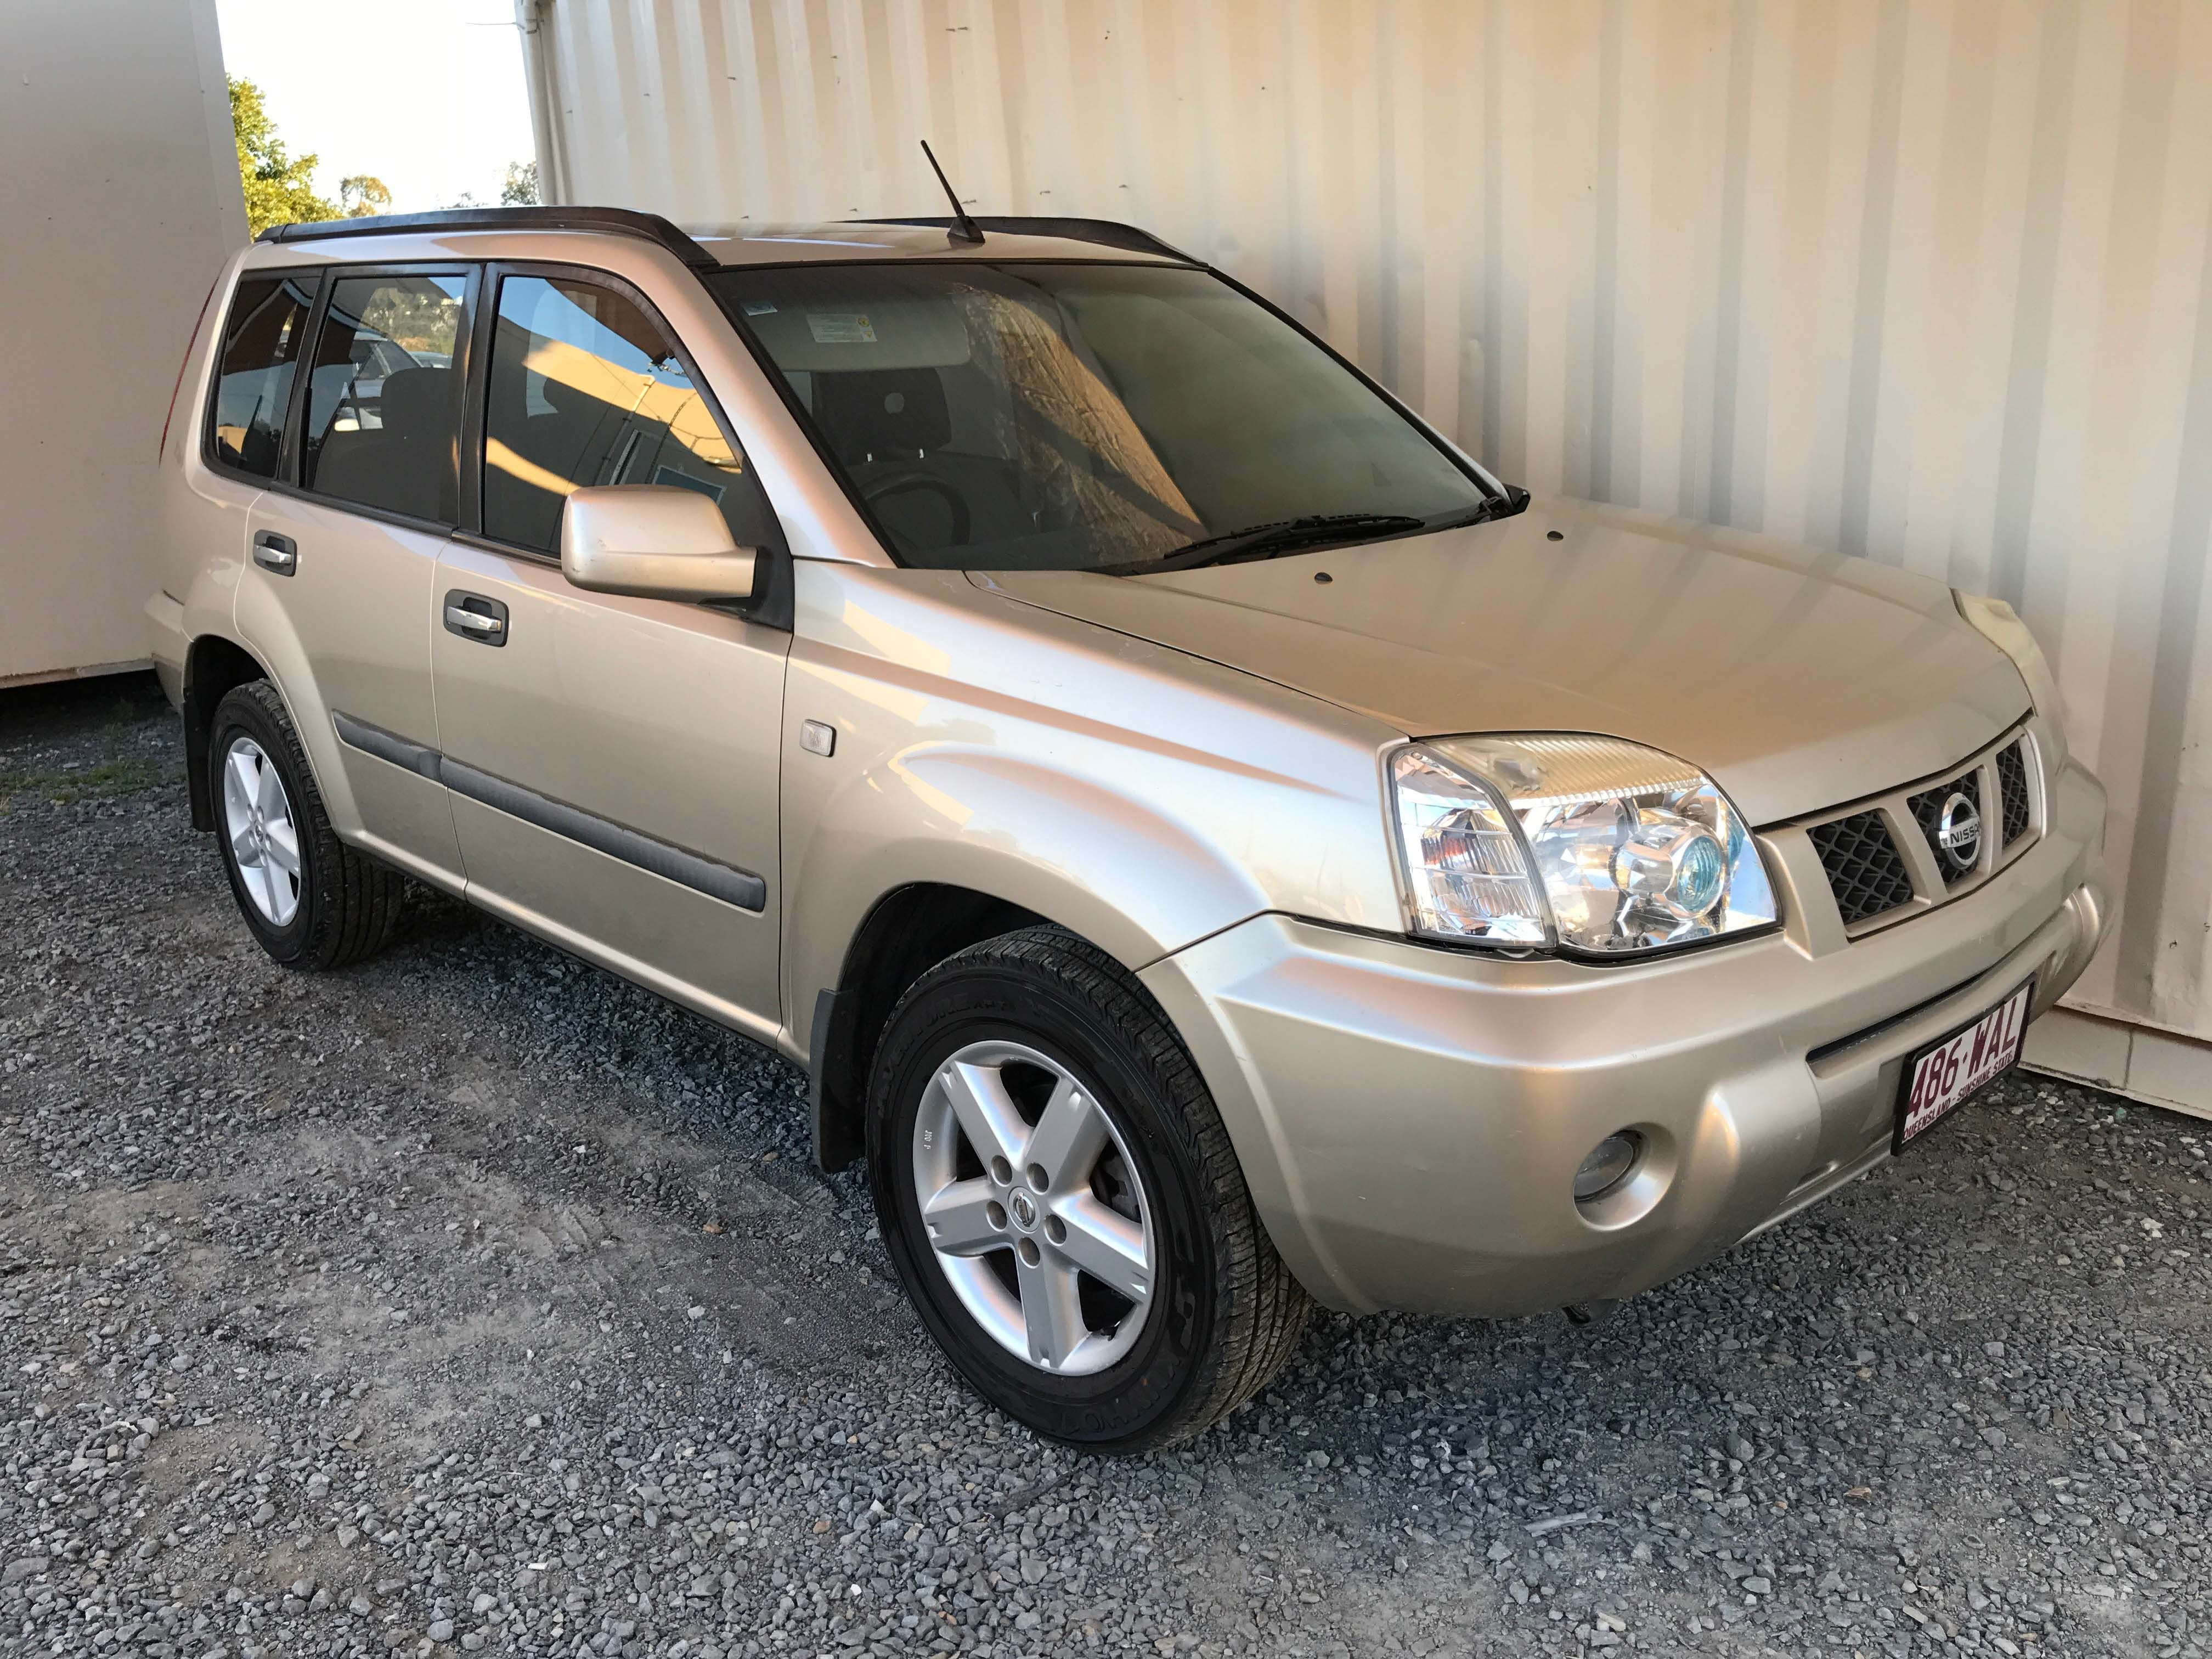 STS 4x4 SUV Nissan XTrail 2006 Gold Cars for sale